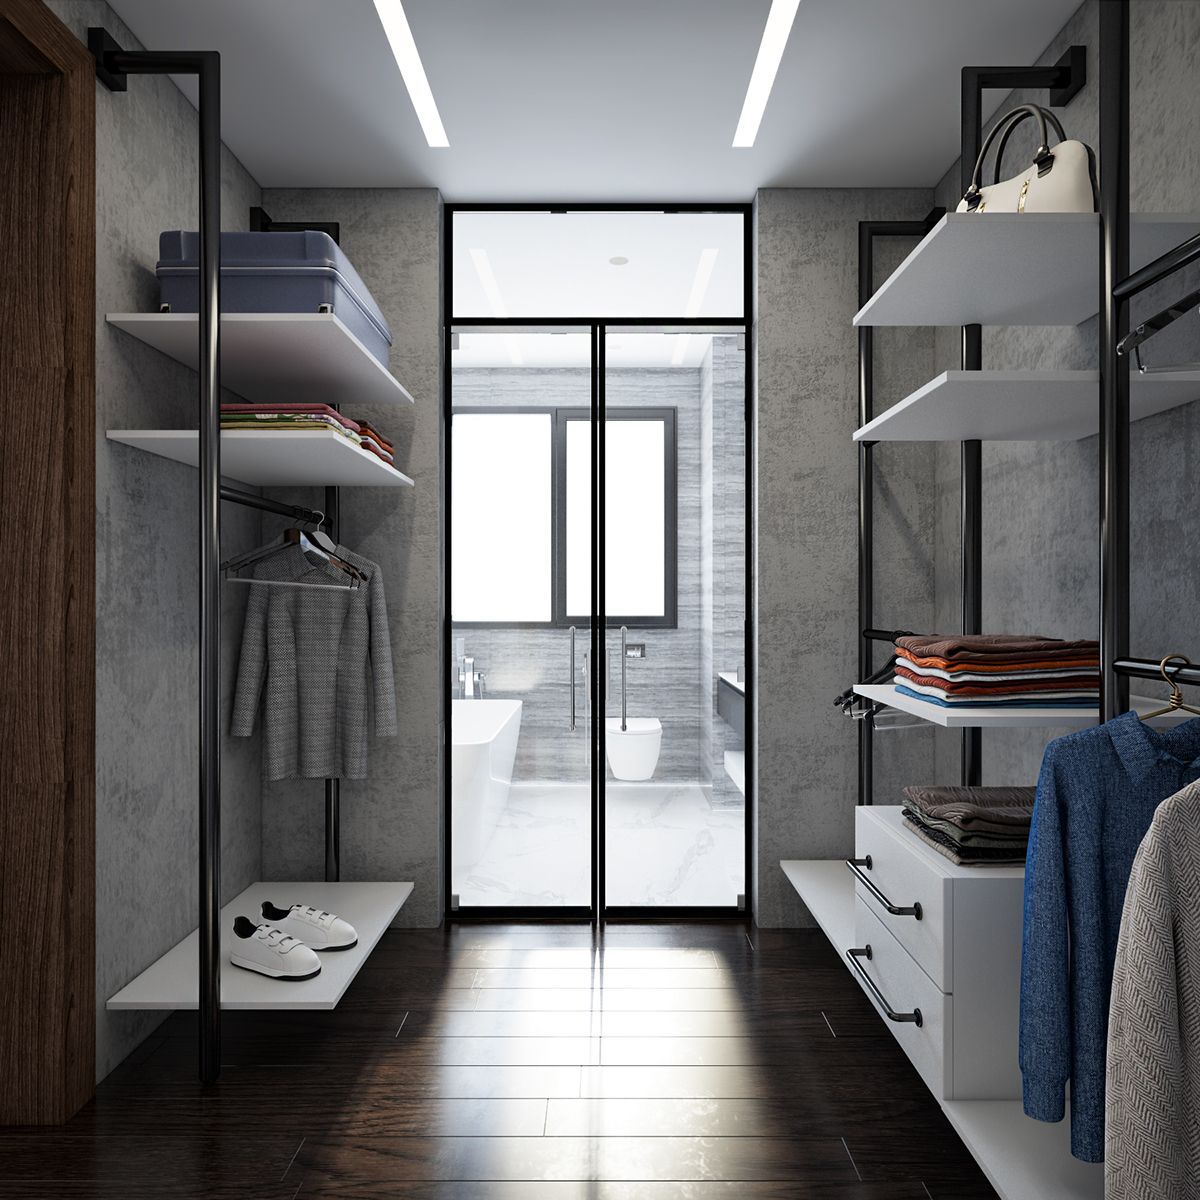 Modern Industrial Bedroom Modern Industrial Bedroom And Bathroom For Hsi On Behance